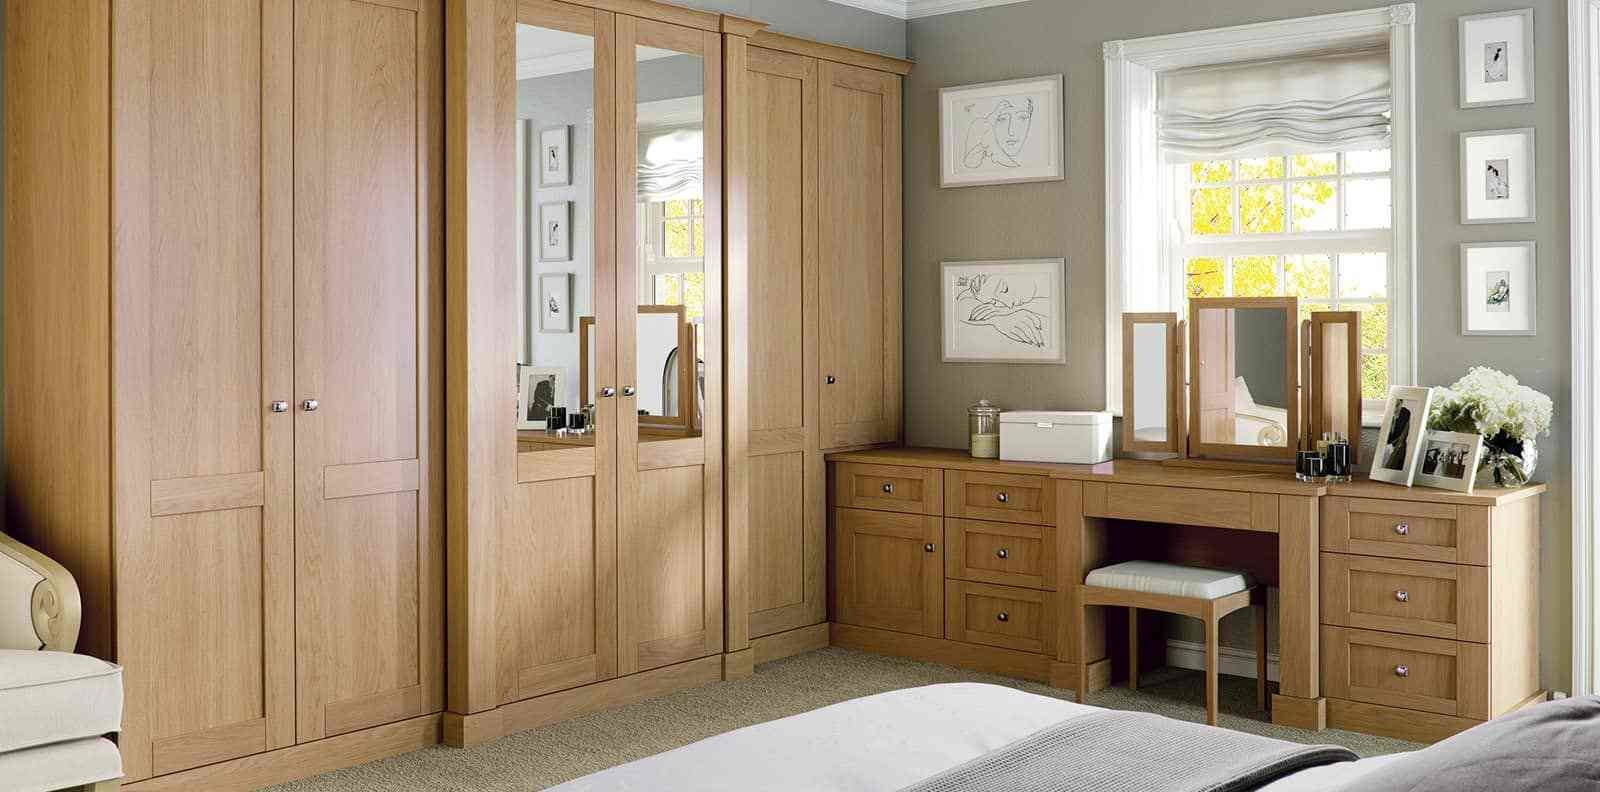 Best 100 Wooden Bedroom Wardrobe Design Ideas With Pictures